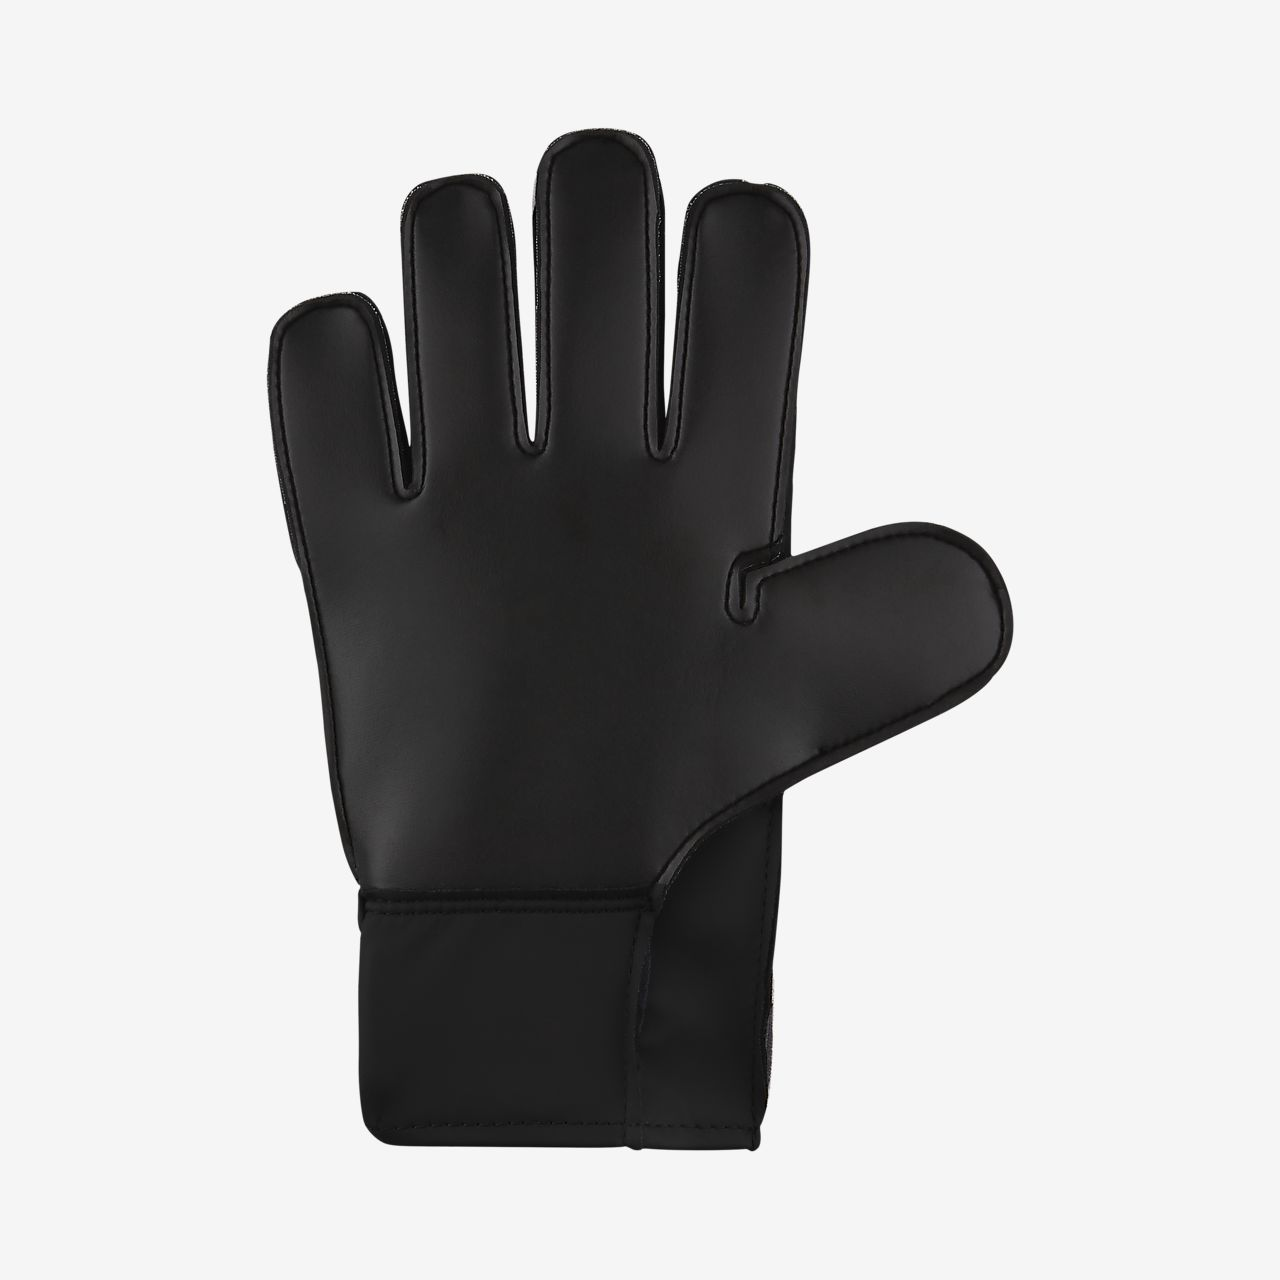 nike match goalkeeper gloves Get football goalkeeper gloves at nikecom free delivery with your nike account & free returns for 30 days on nike football gloves.